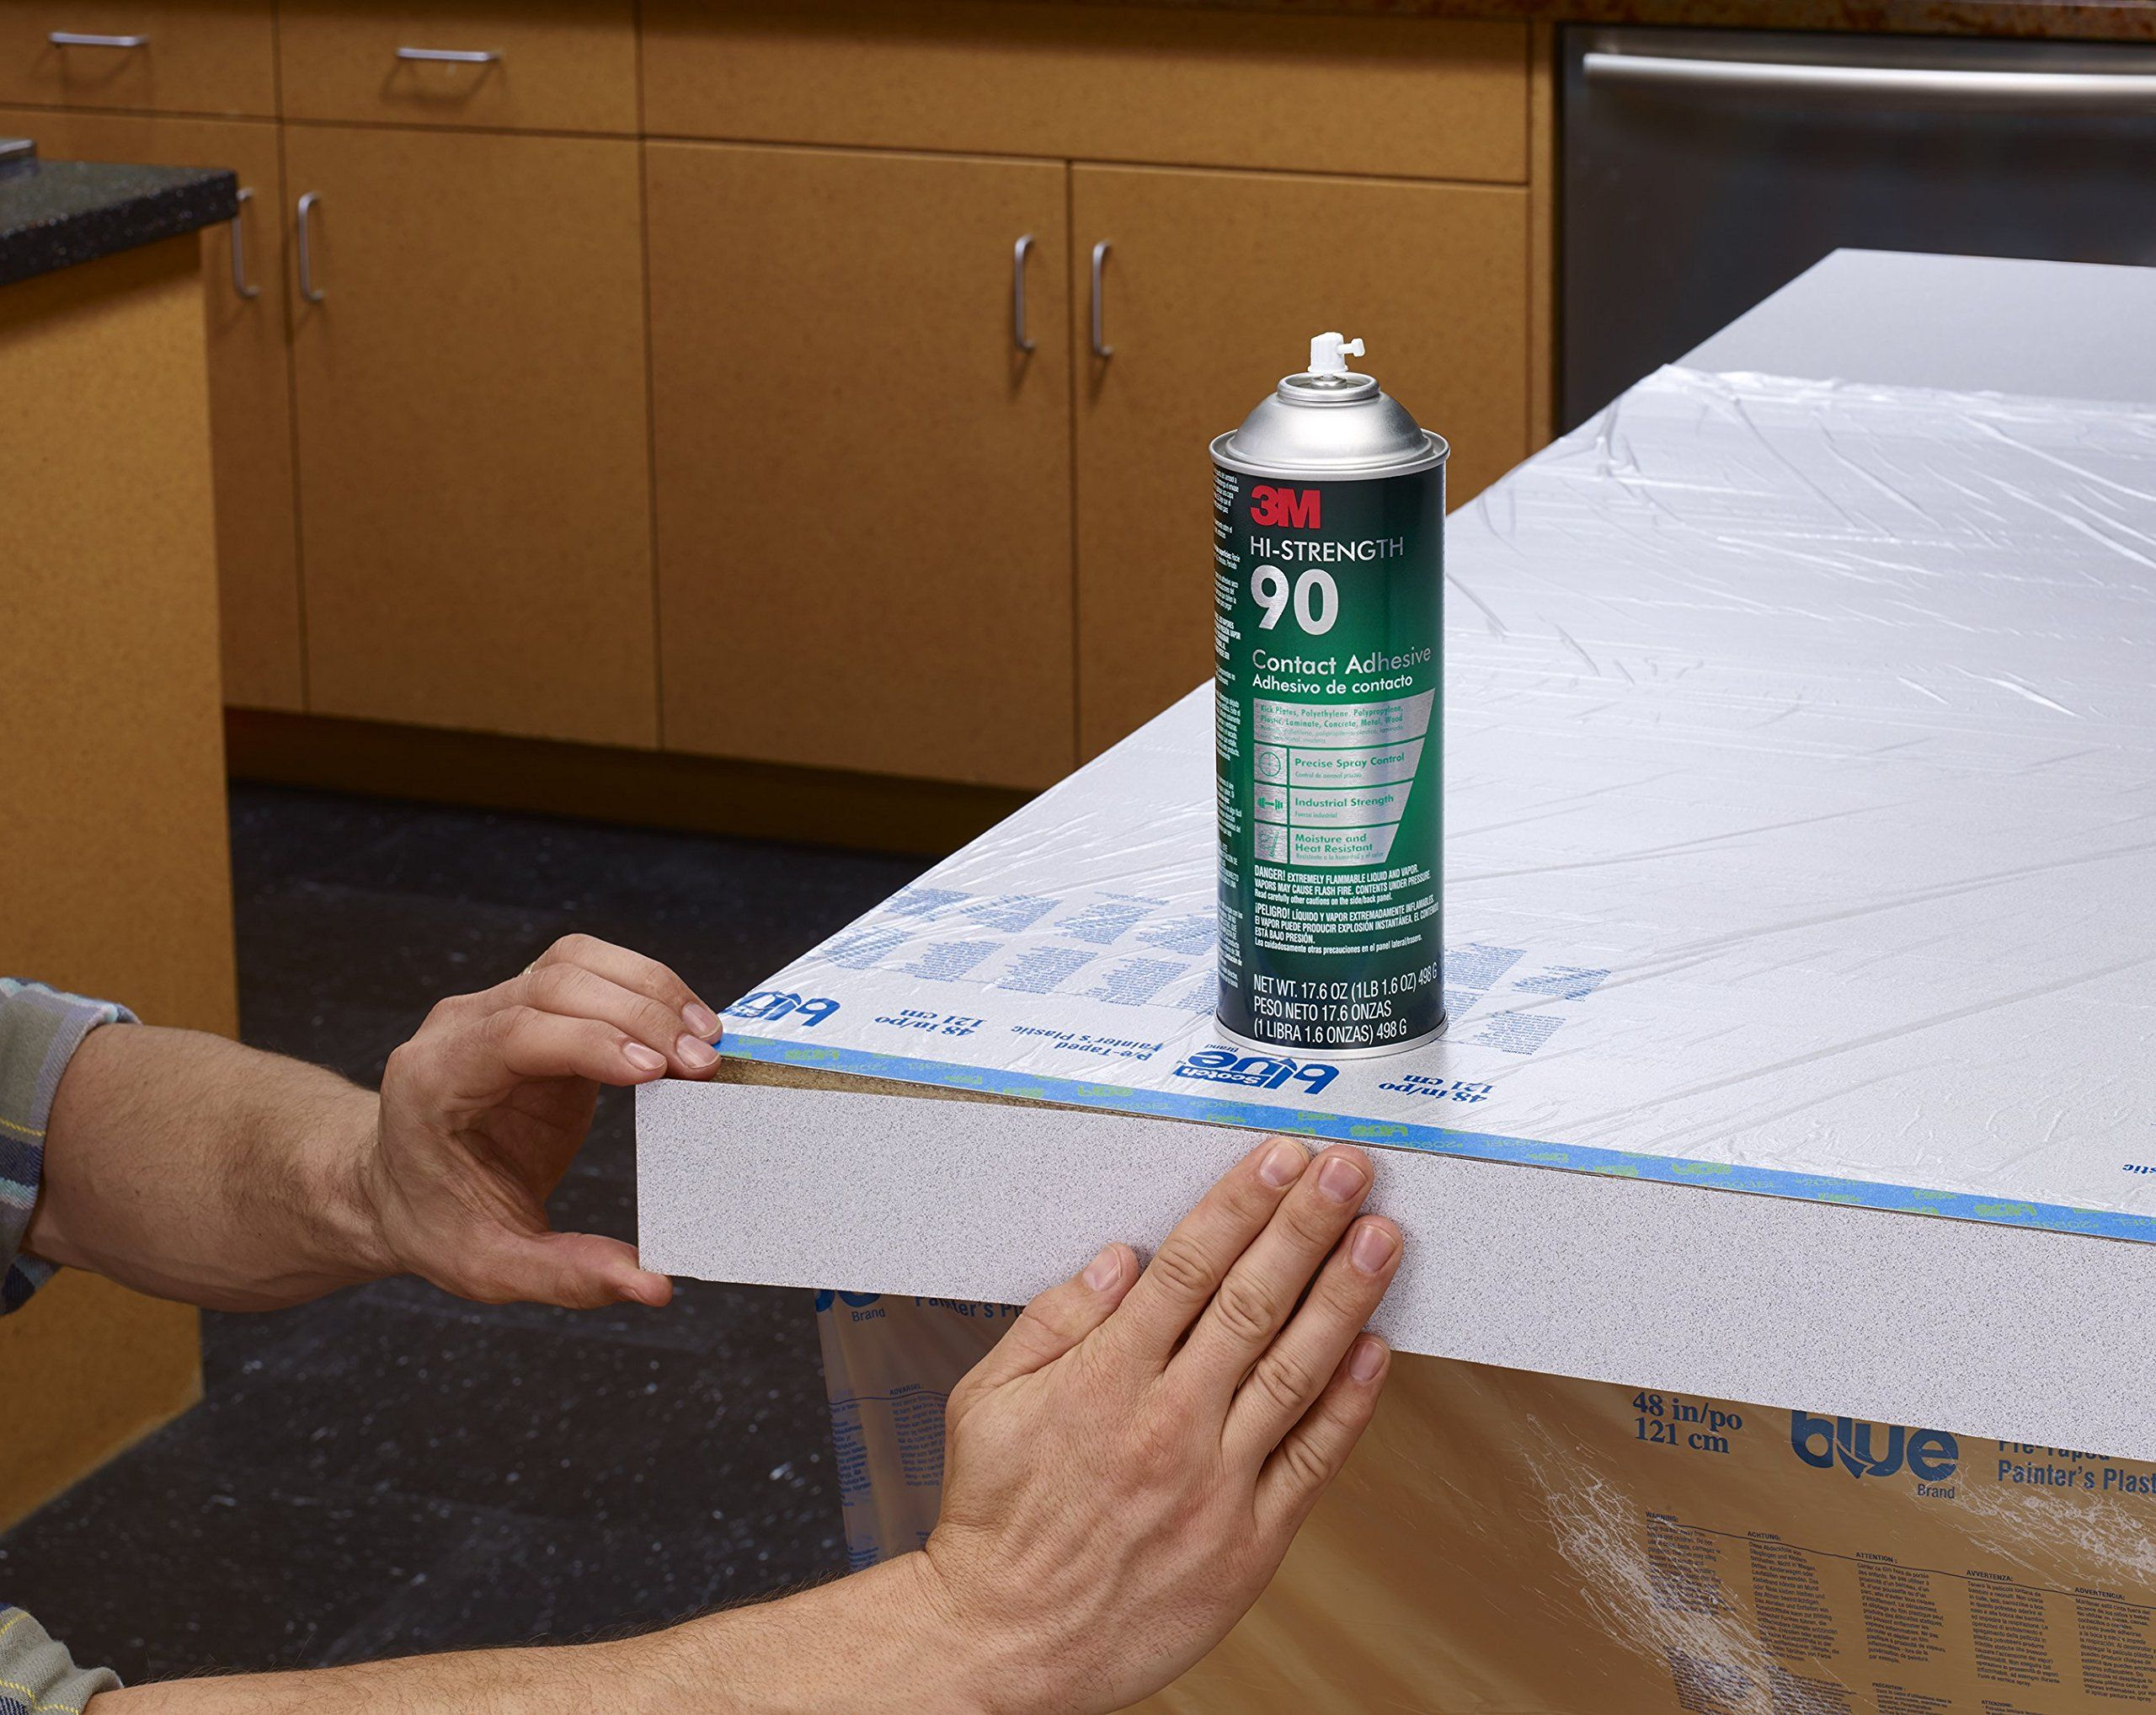 3m 9024 Spray Adhesive 17 60 Oz 12 Per Case Click Image To Review More Details This Is An Affiliate Link Craftssupplies Spray Adhesive Adhesive Spray